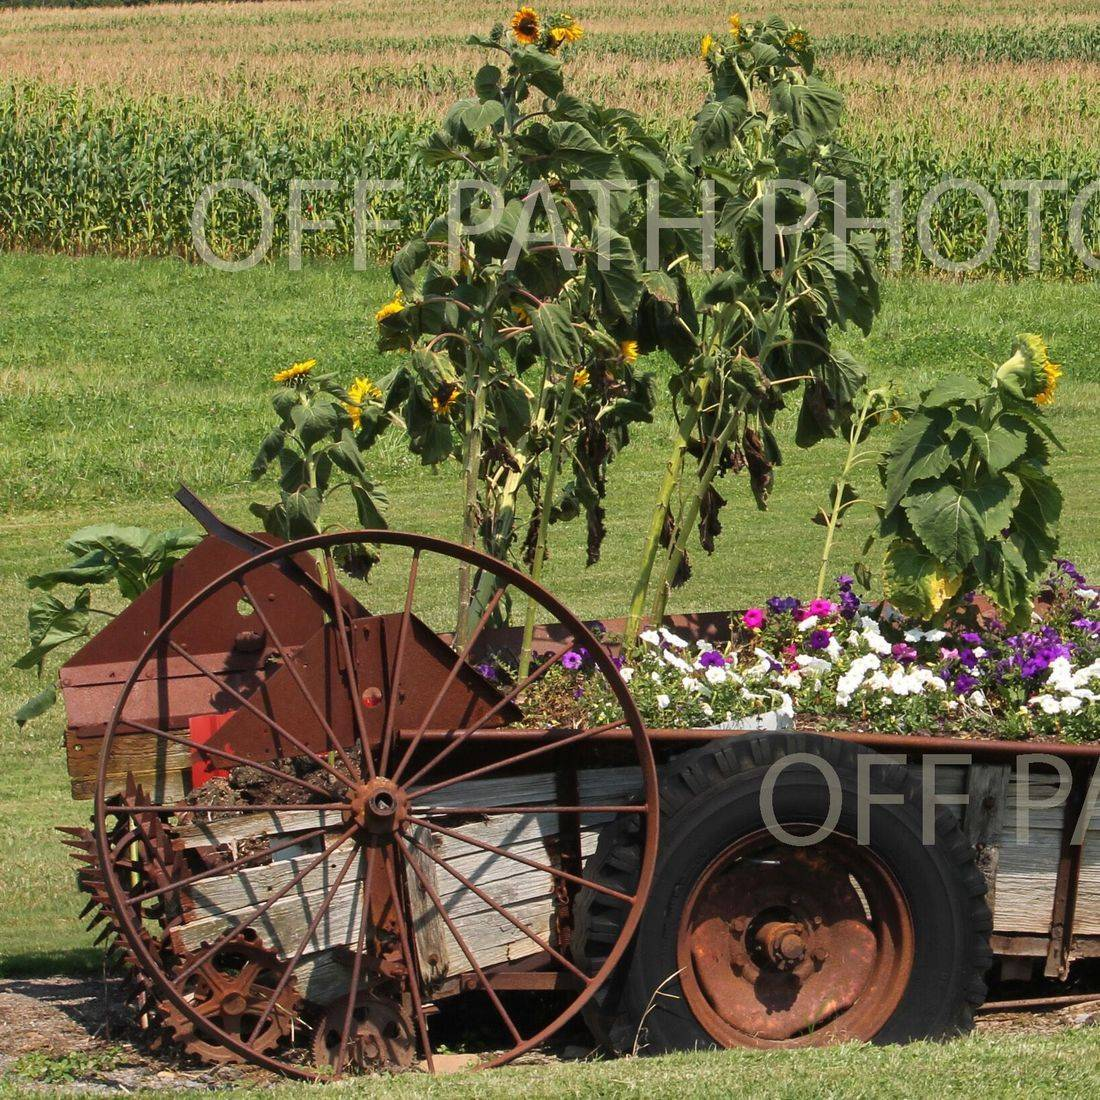 photography, flowers, plants, summer, antique farm machinery, fields,  country,  wheels